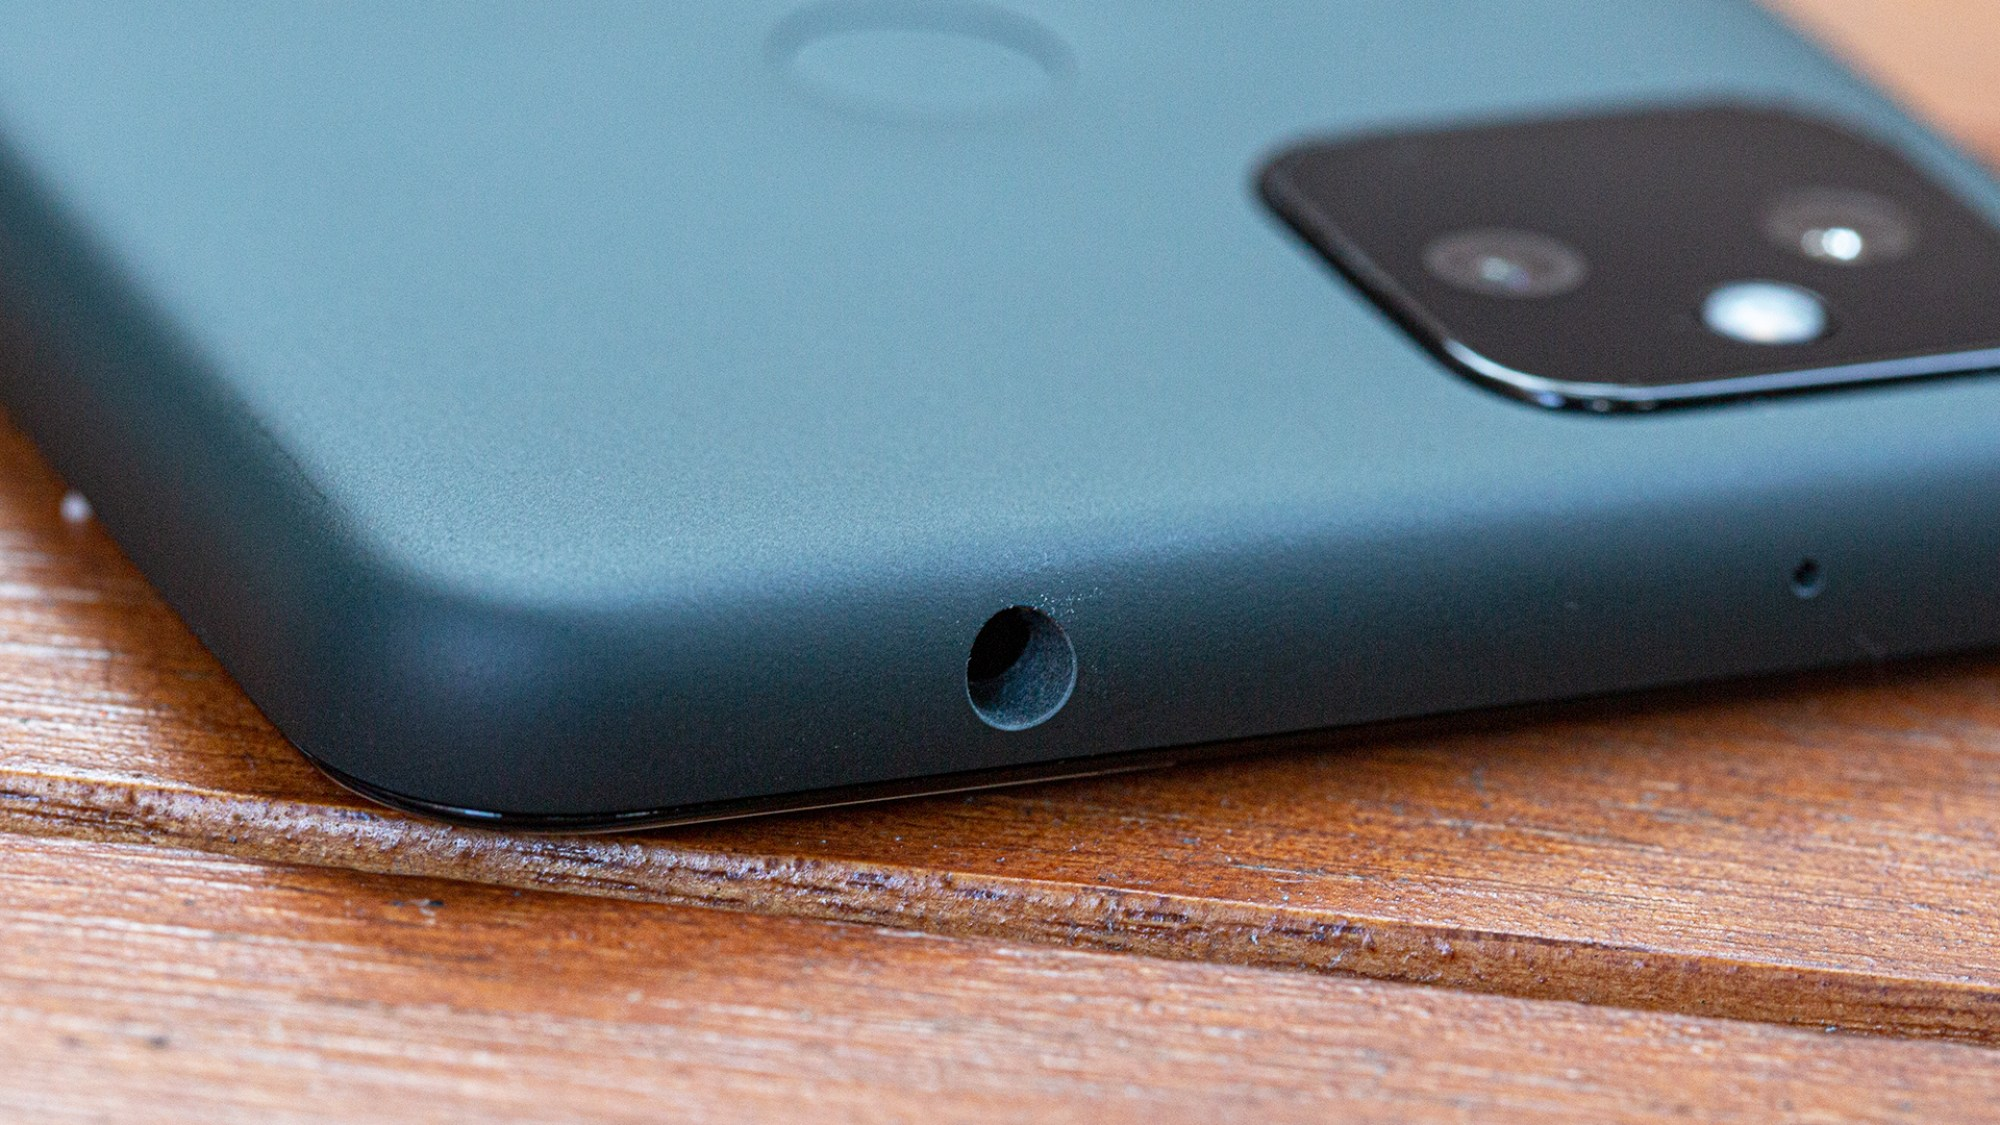 There's that beautiful headphone jack.